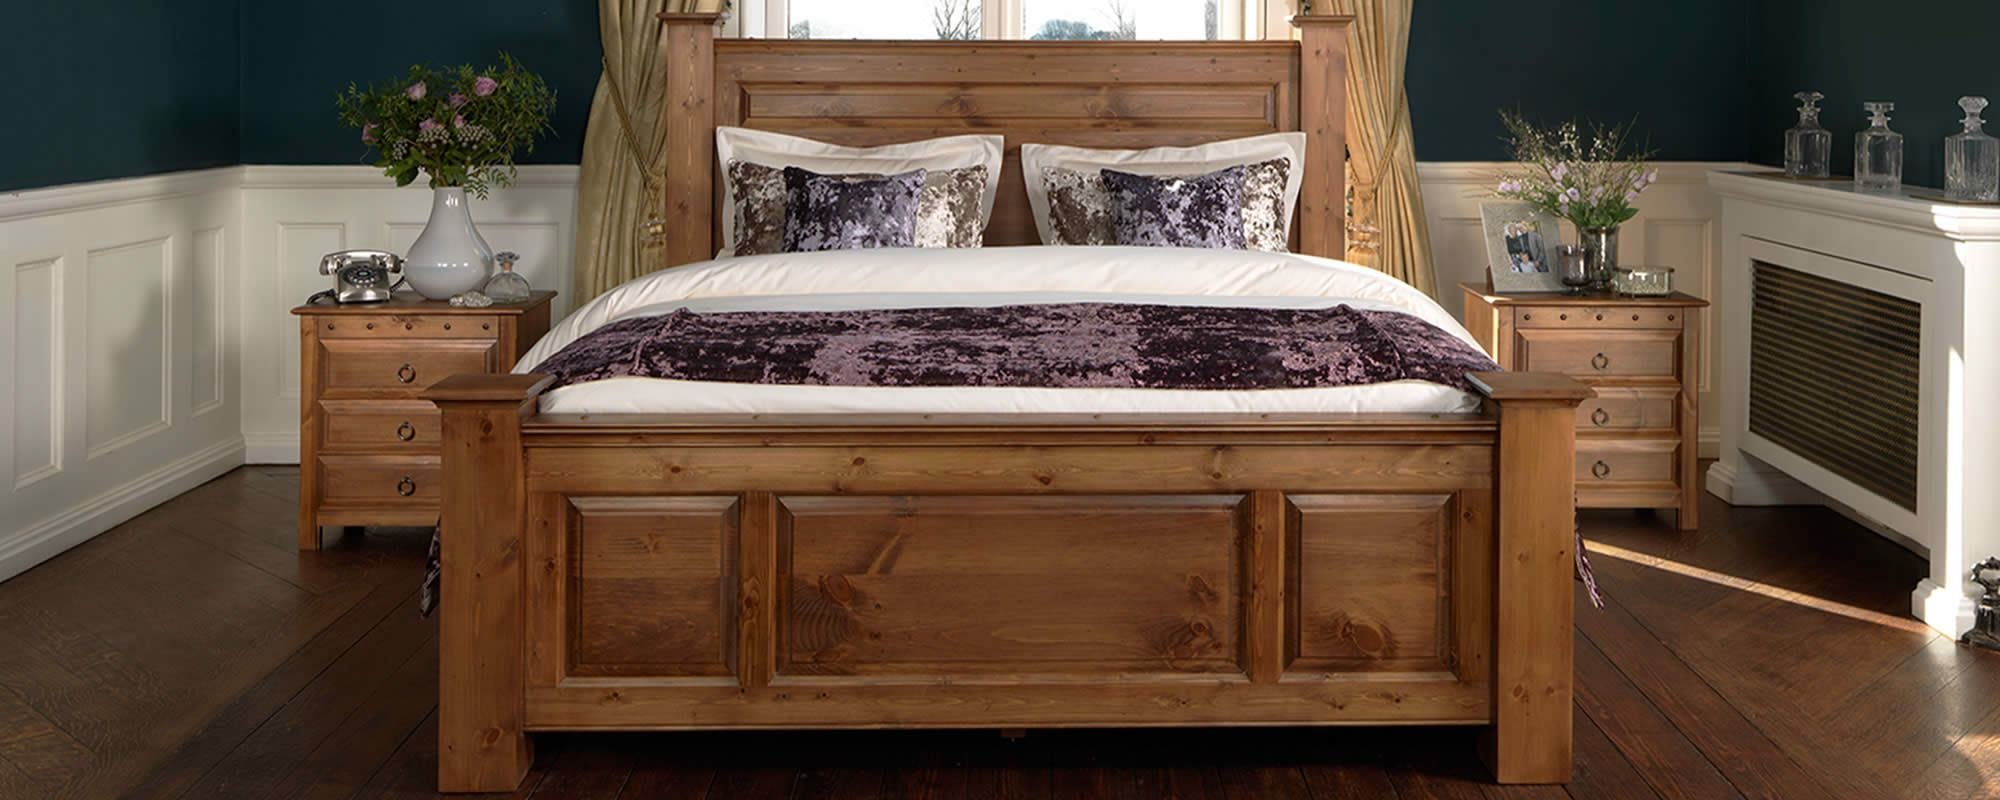 Best Handmade Bedroom Furniture Uk Tocdep2016 Com With Pictures